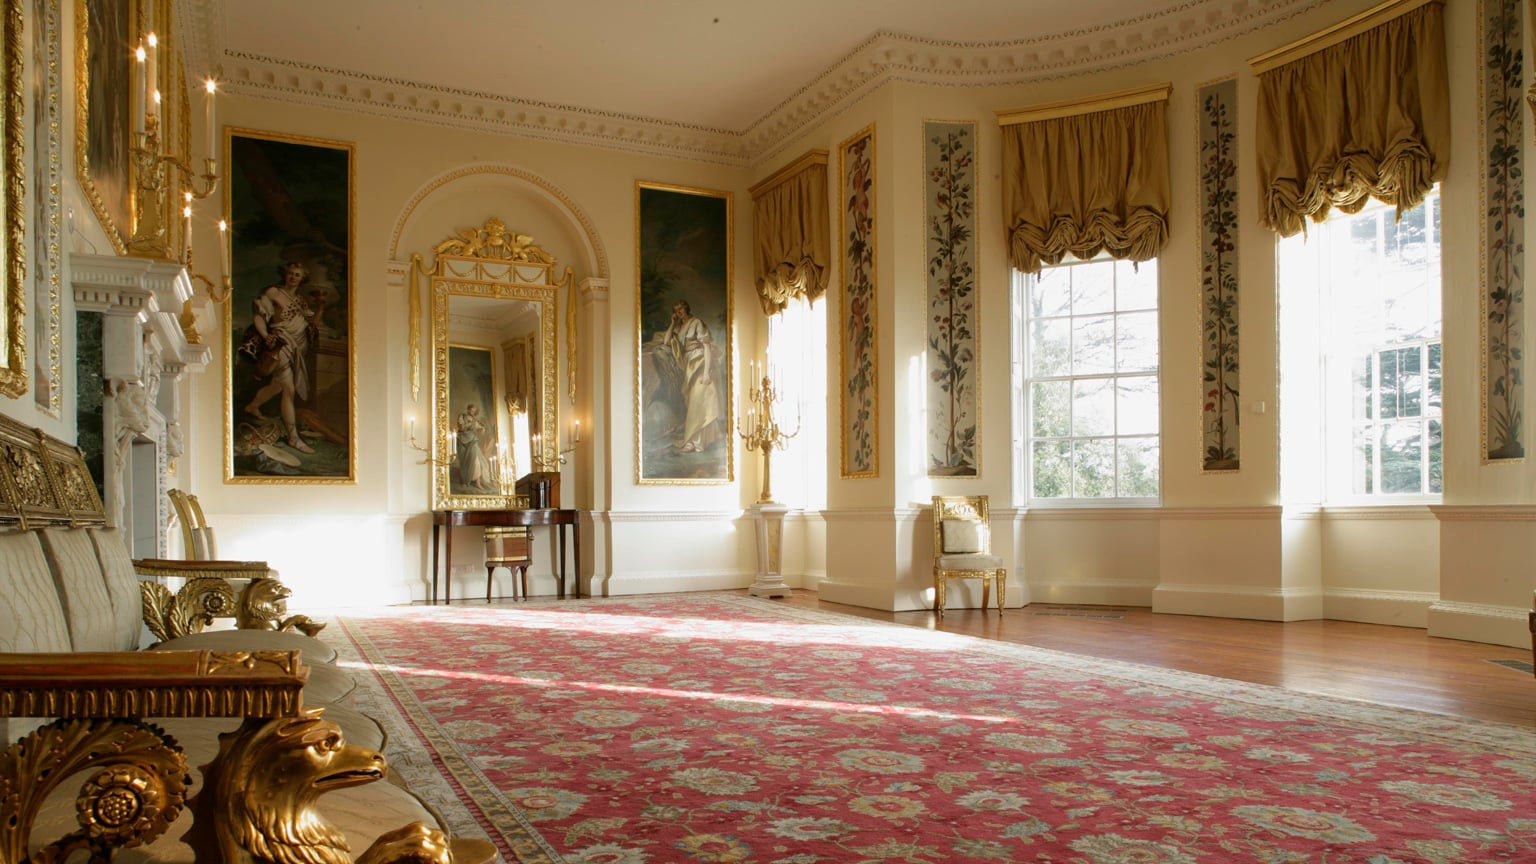 5. Danson House, Kent - Free entry with National Art Pass